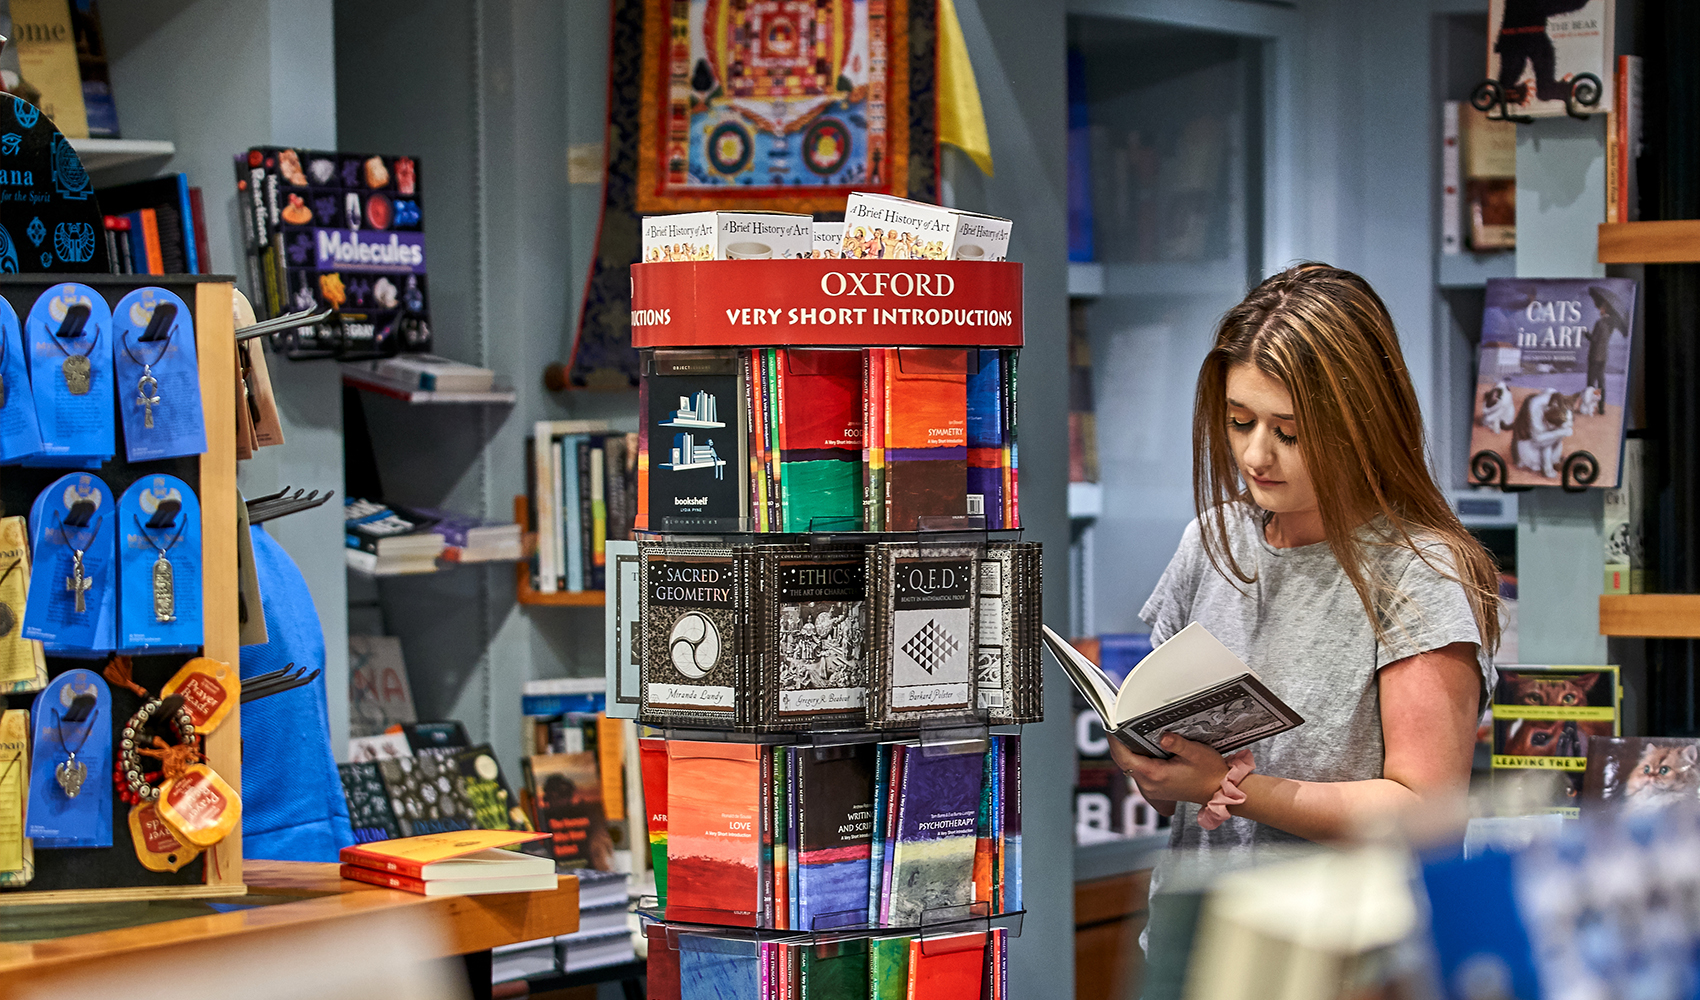 Shopper browses in the museum bookshop